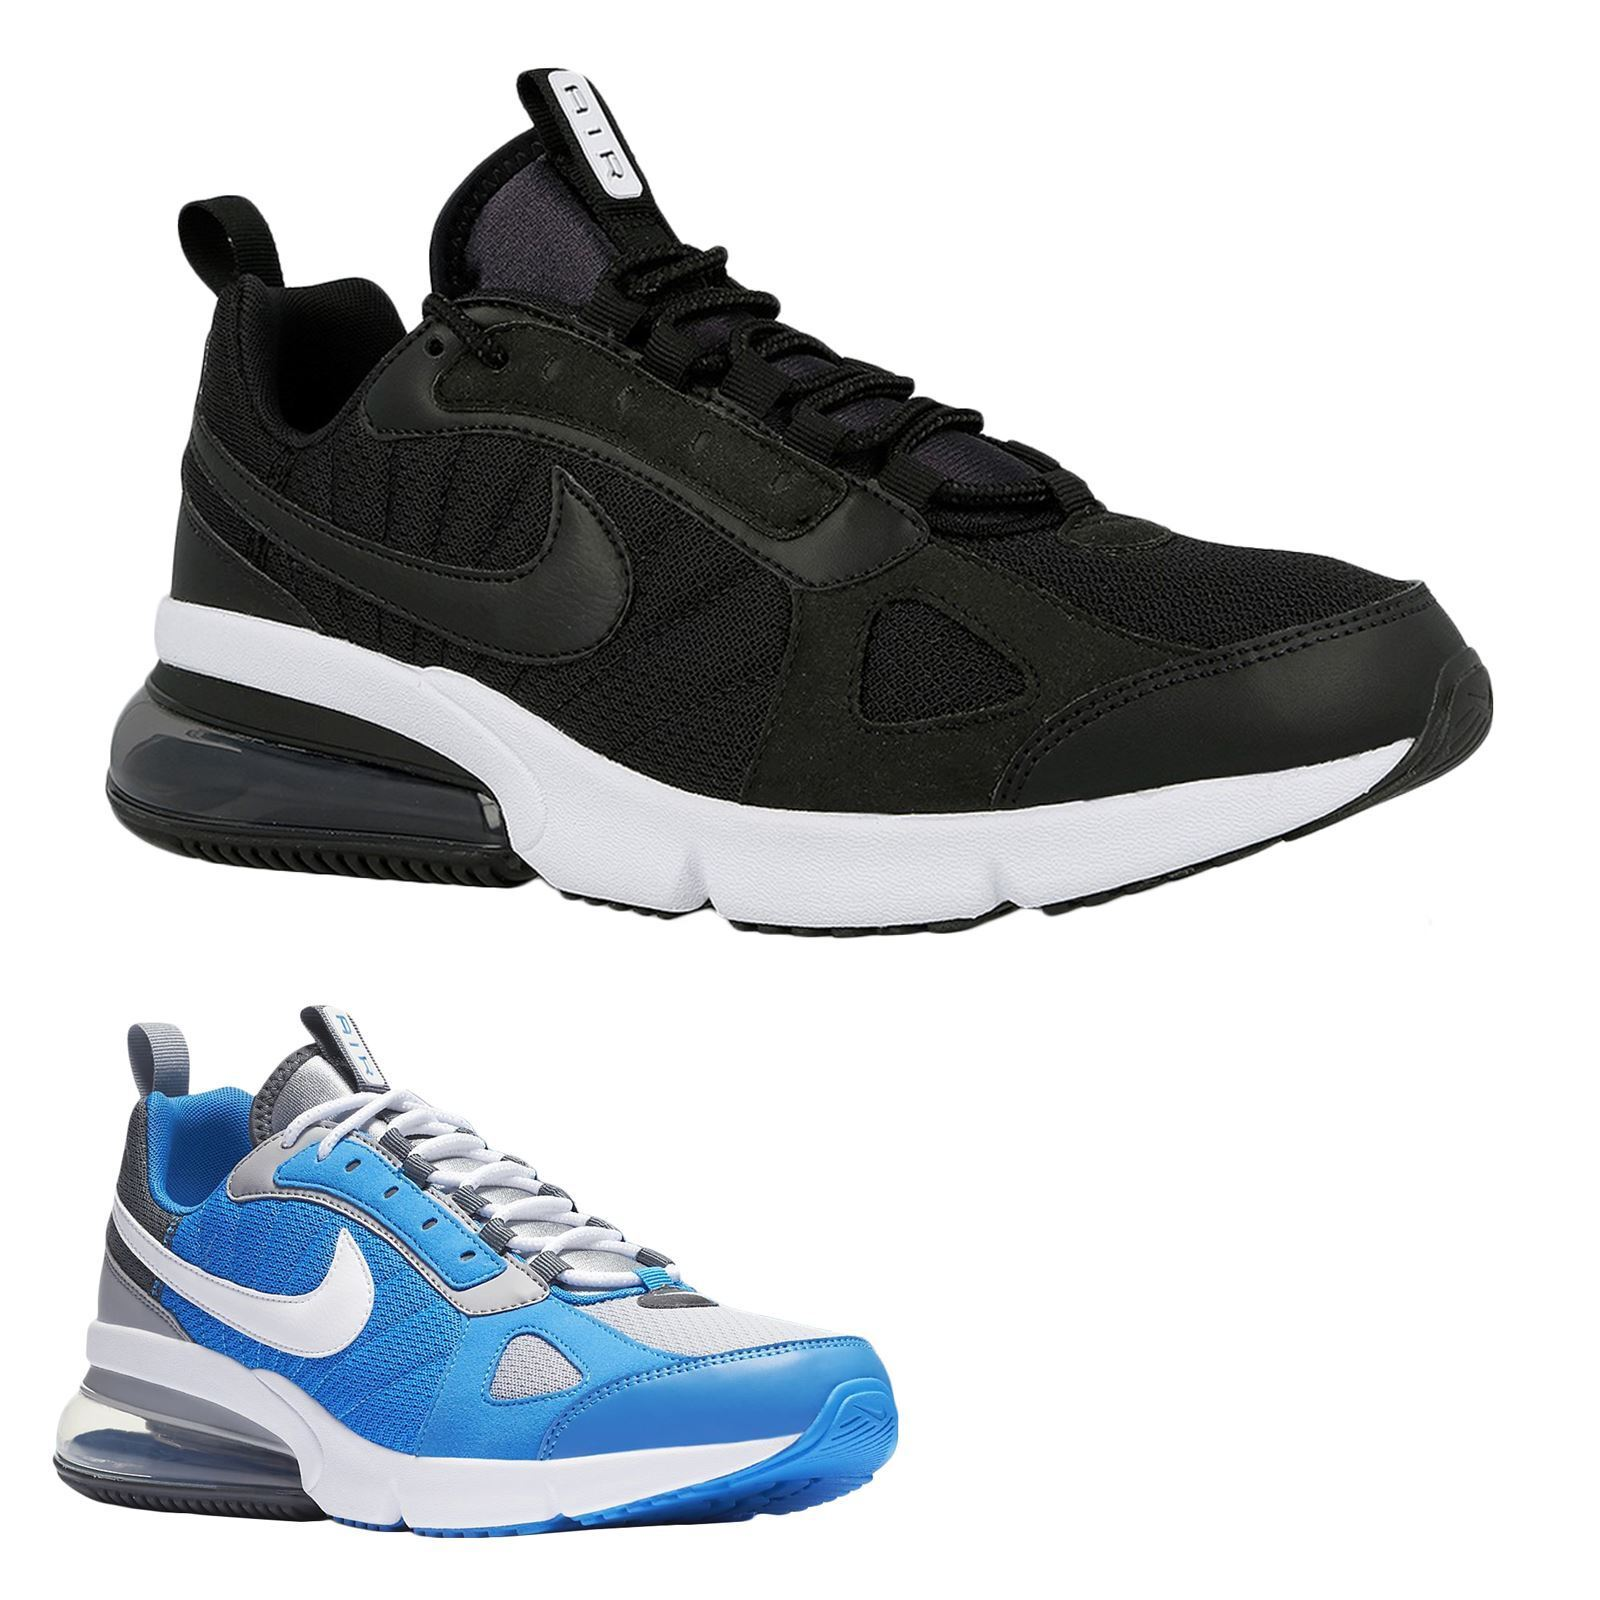 new products 20a0b 46e8c Nike Air Max 270 Futura Mens Ao1569-001 Black White Running Shoes Size 8  for sale online   eBay